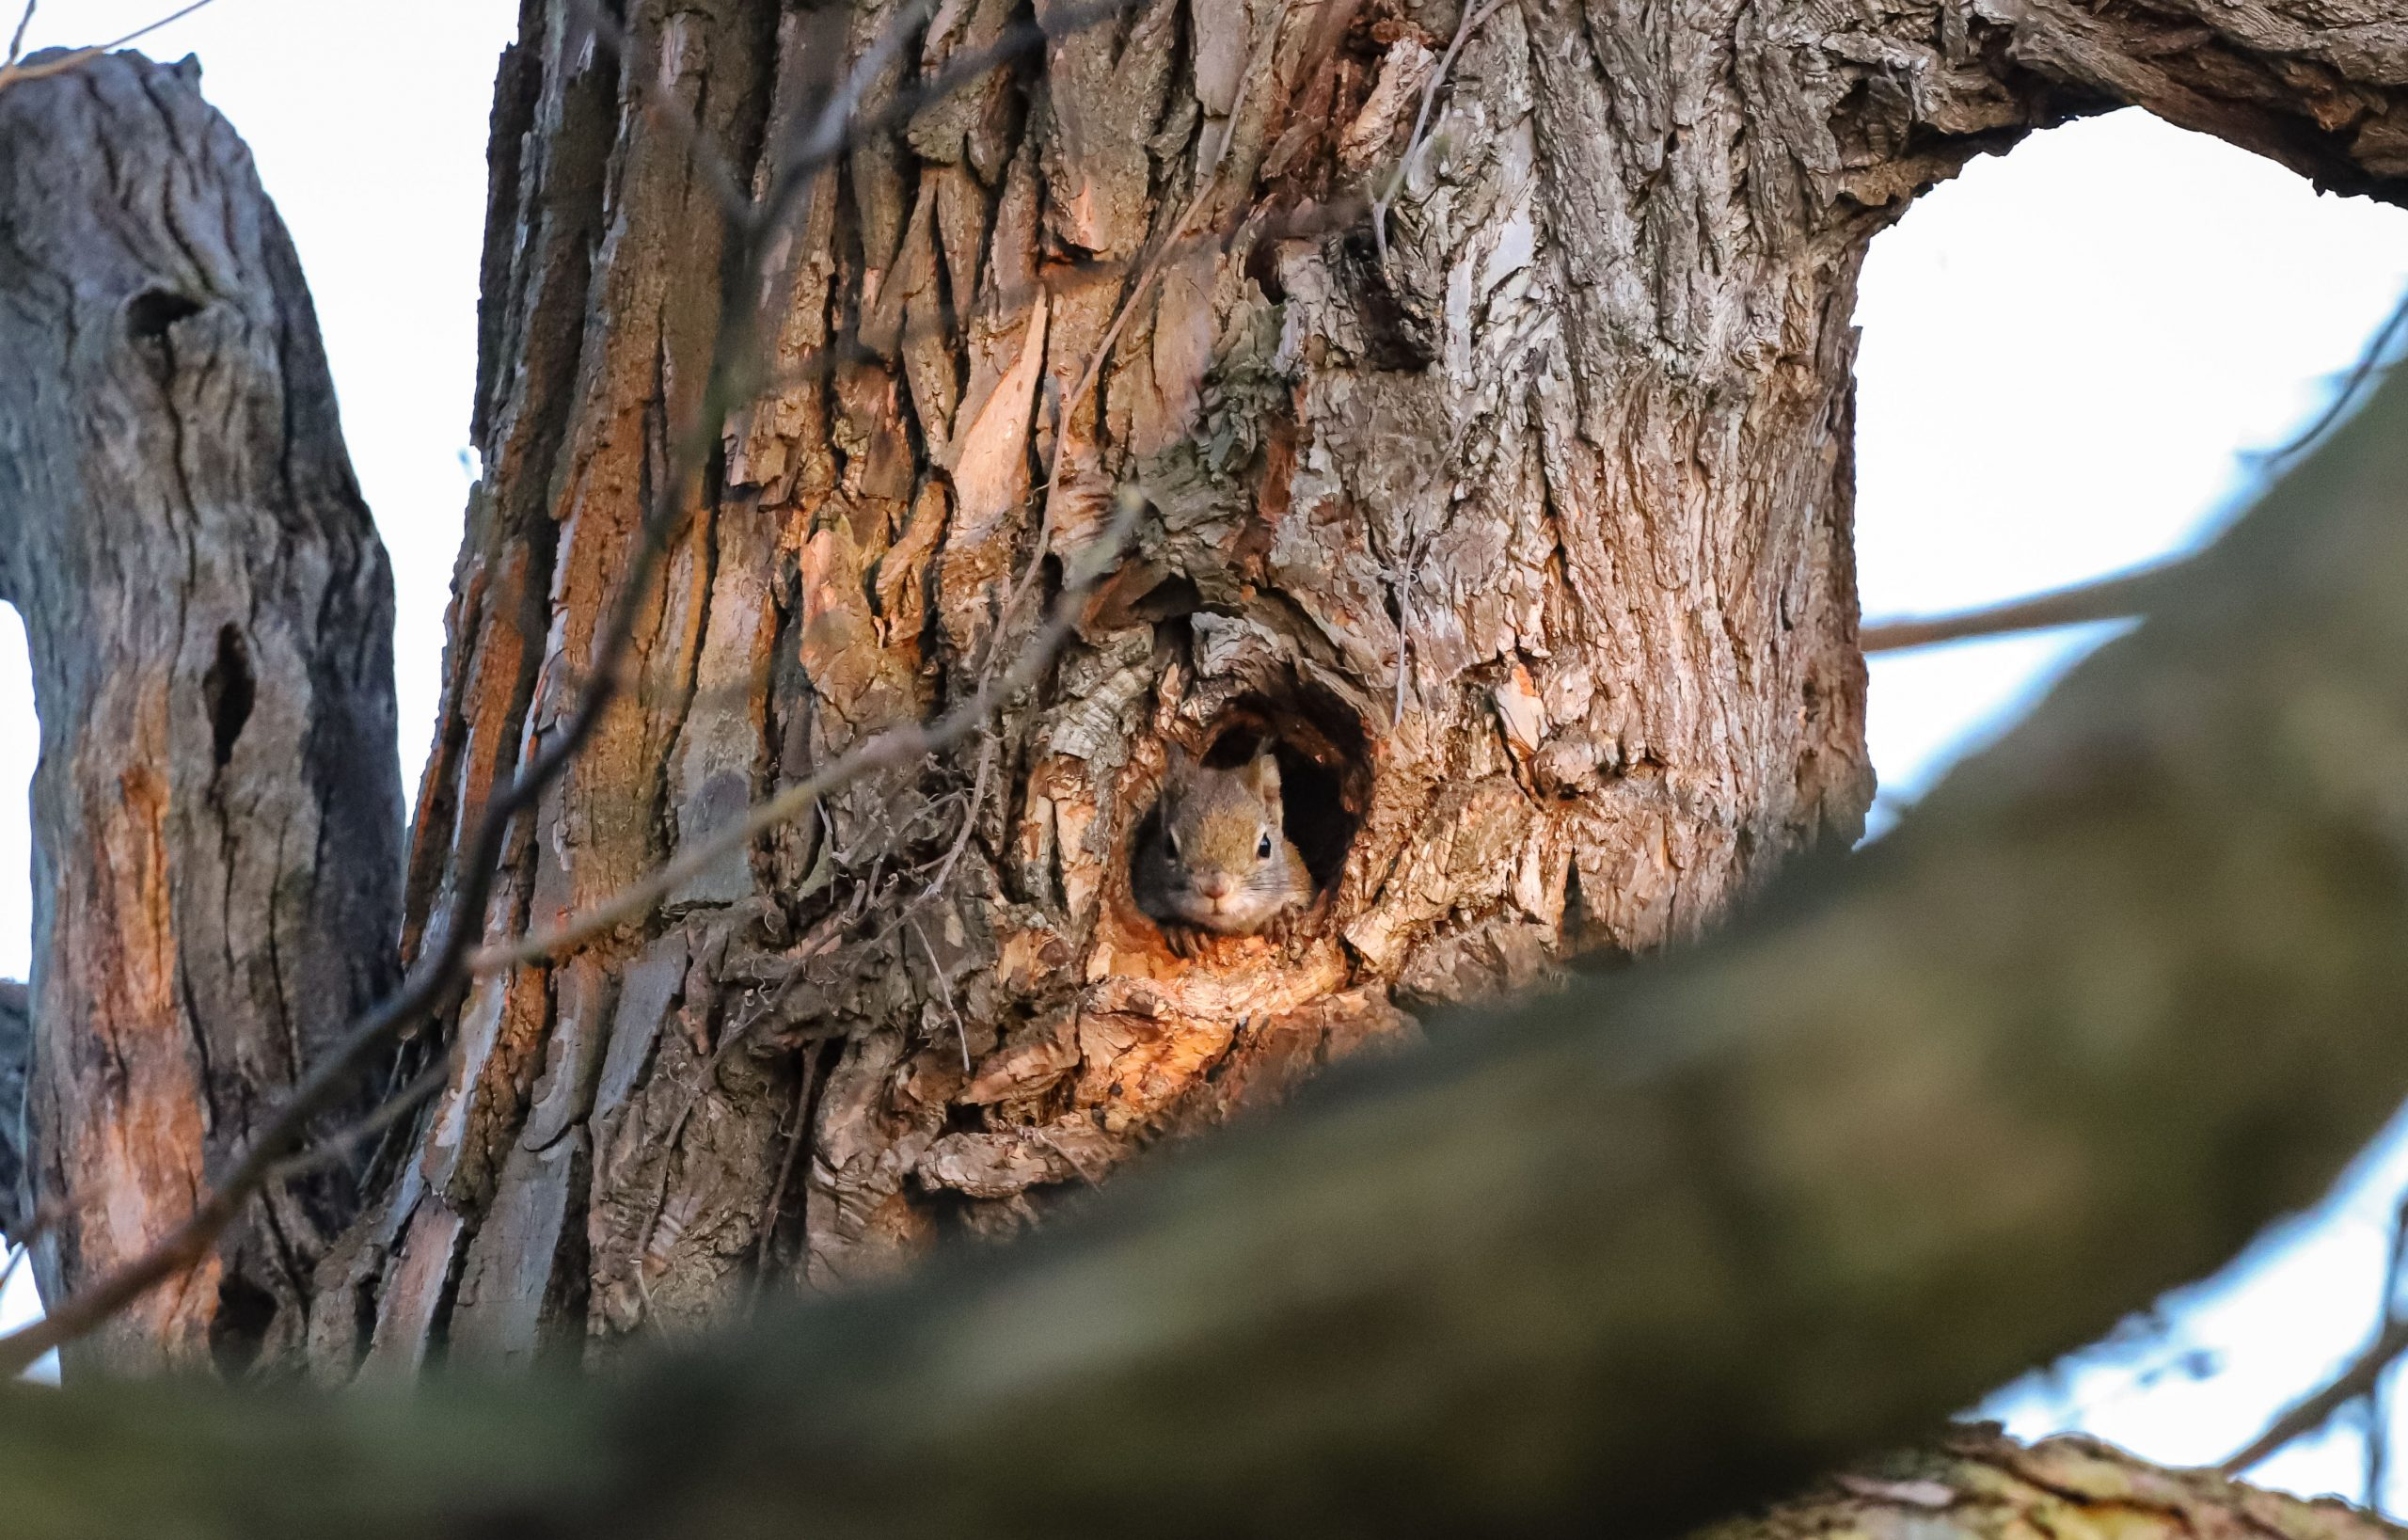 American Red Squirrel in a tree